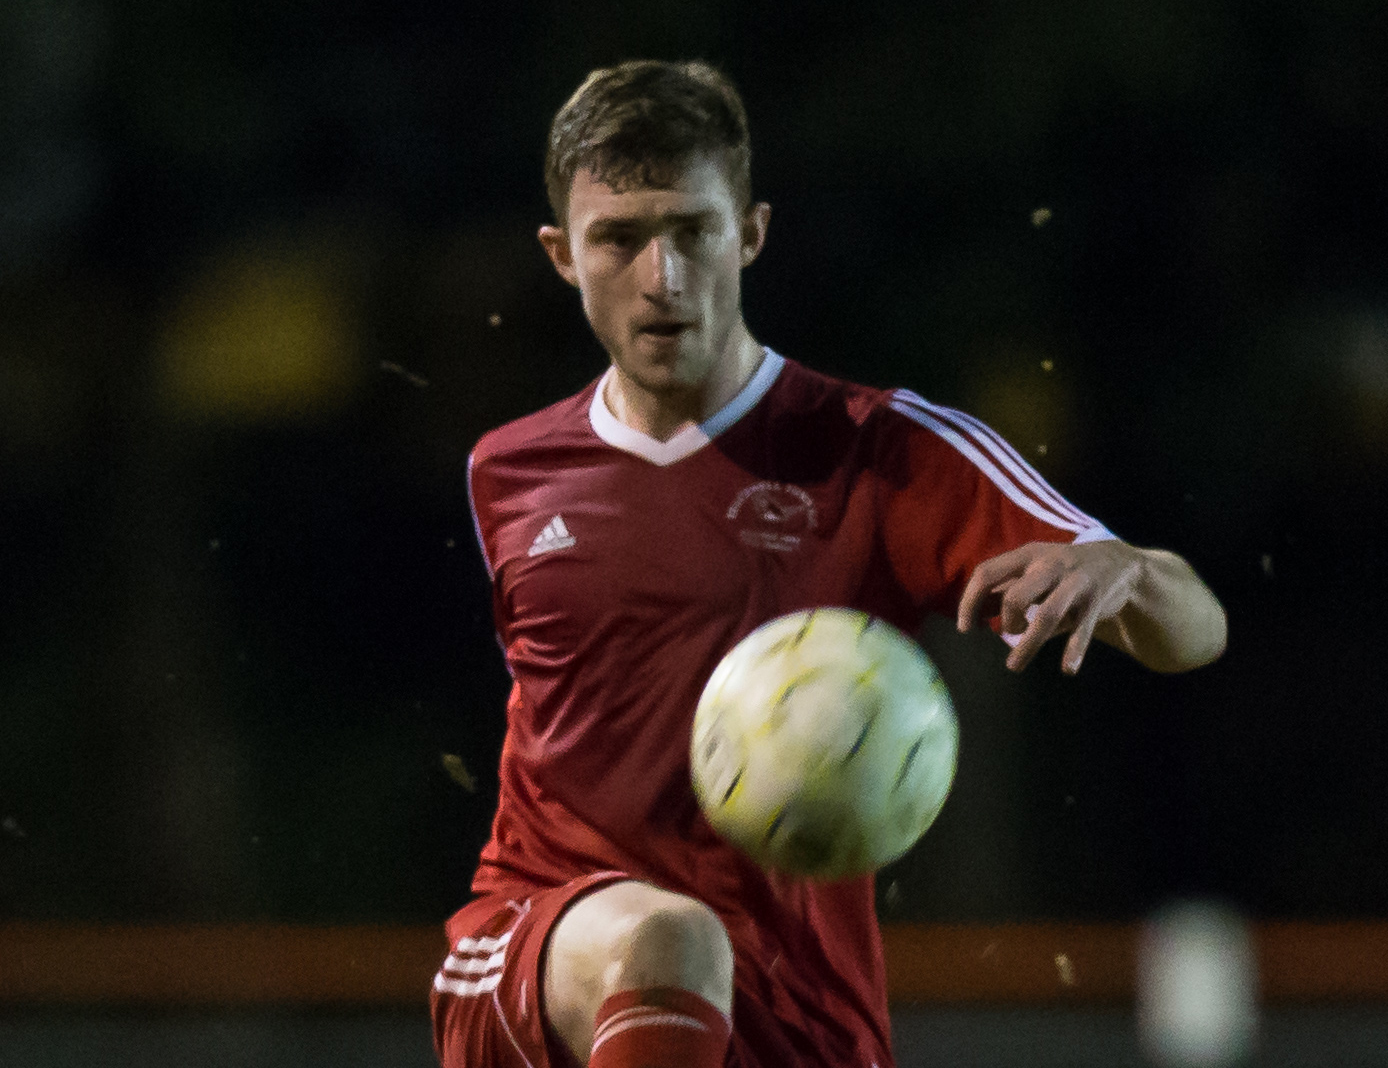 Joe Grant and George Short see Bracknell Town through in FA Vase